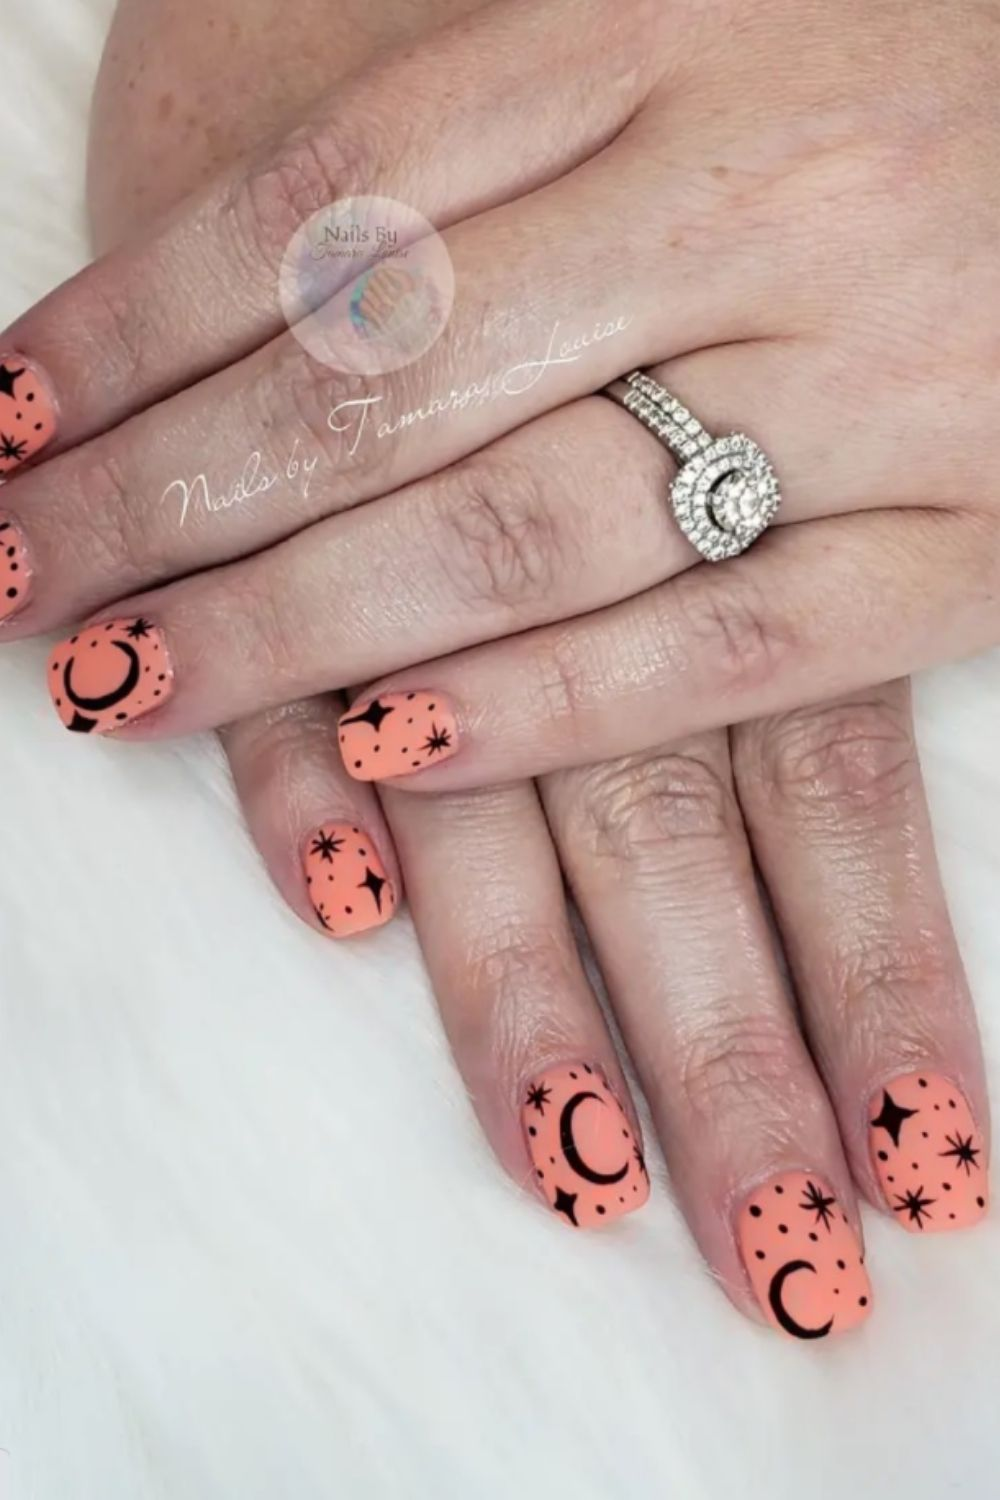 35 Fantastic moon nails and star nails designs that are so cute